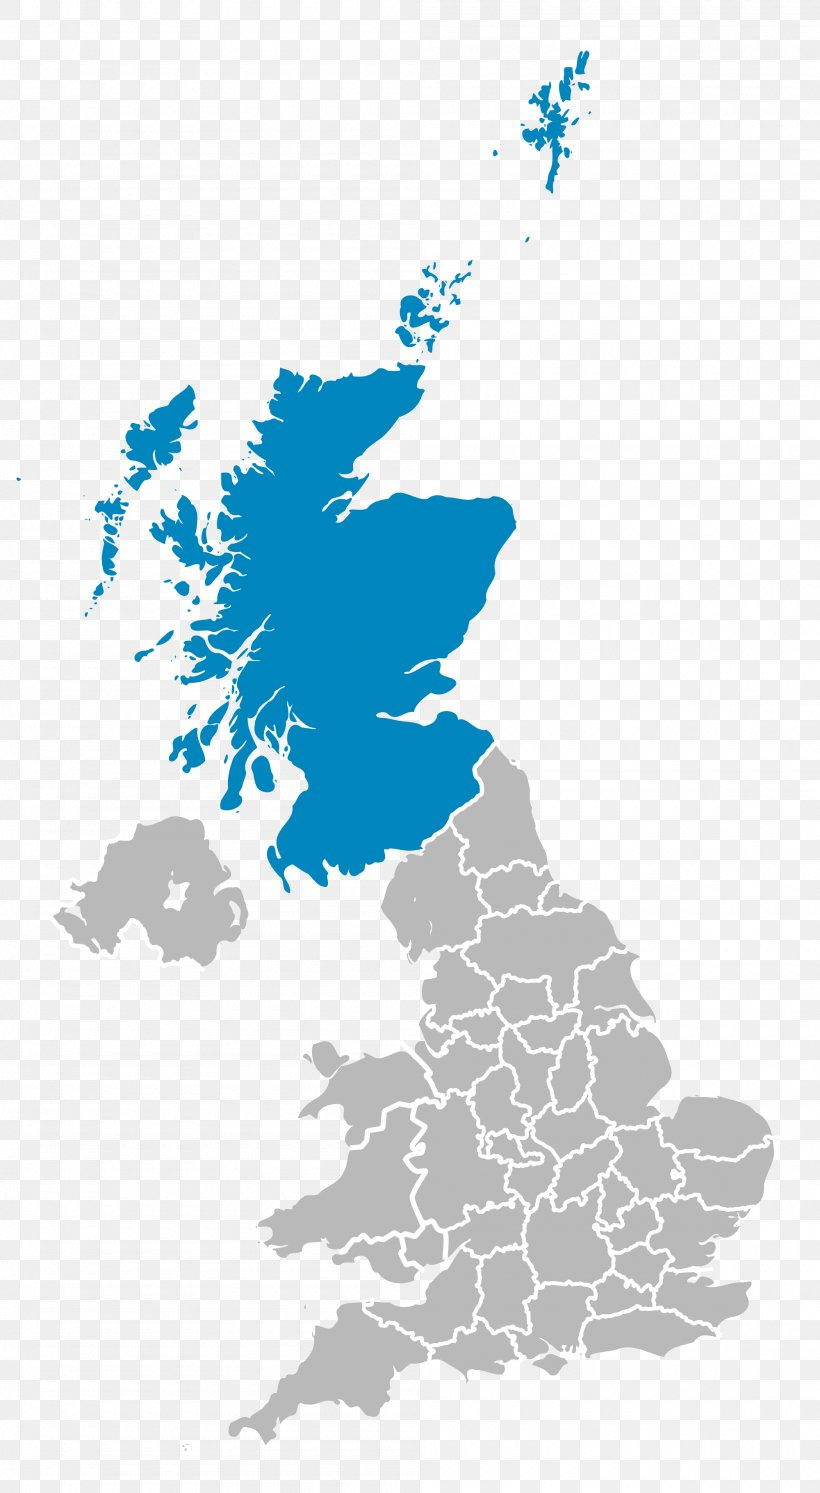 England Vector Map Blank Map, PNG, 2000x3643px, England, Area, Black And White, Blank Map, Flag Of The United Kingdom Download Free